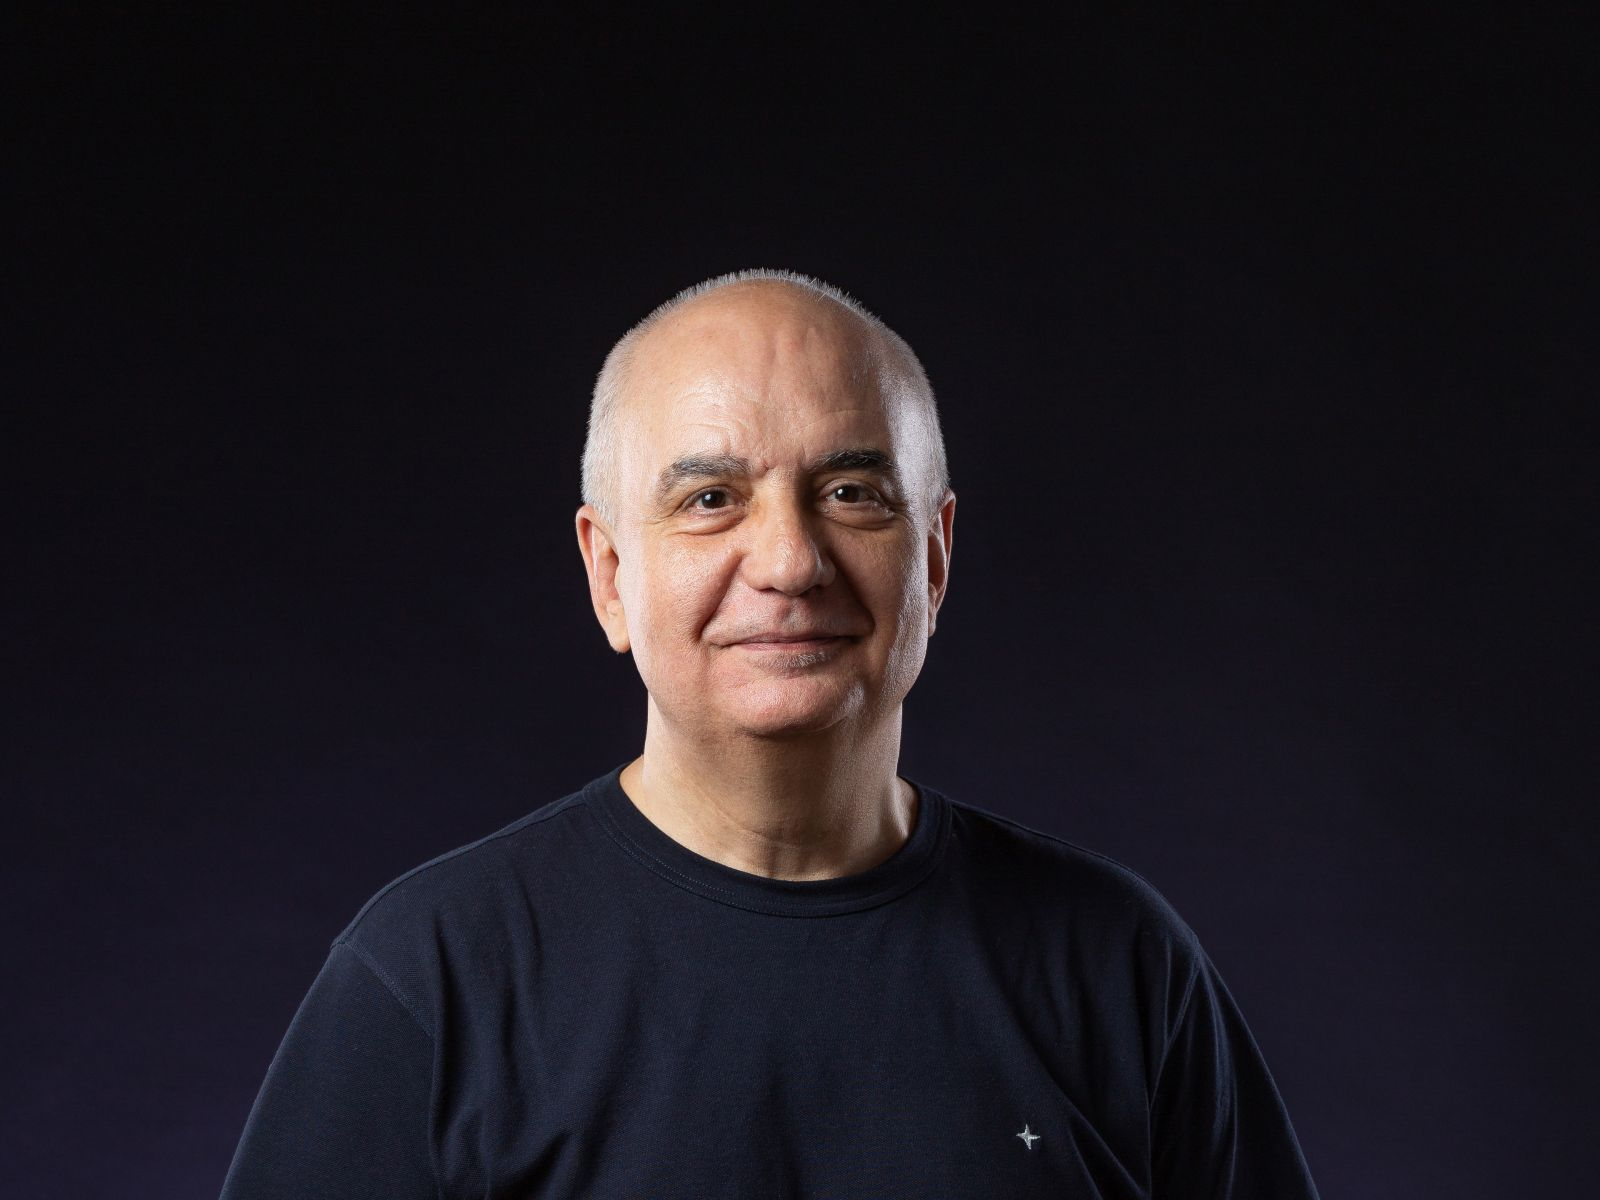 Marius Călin from X Architecture & Engineering, extended interview in Capital magazine